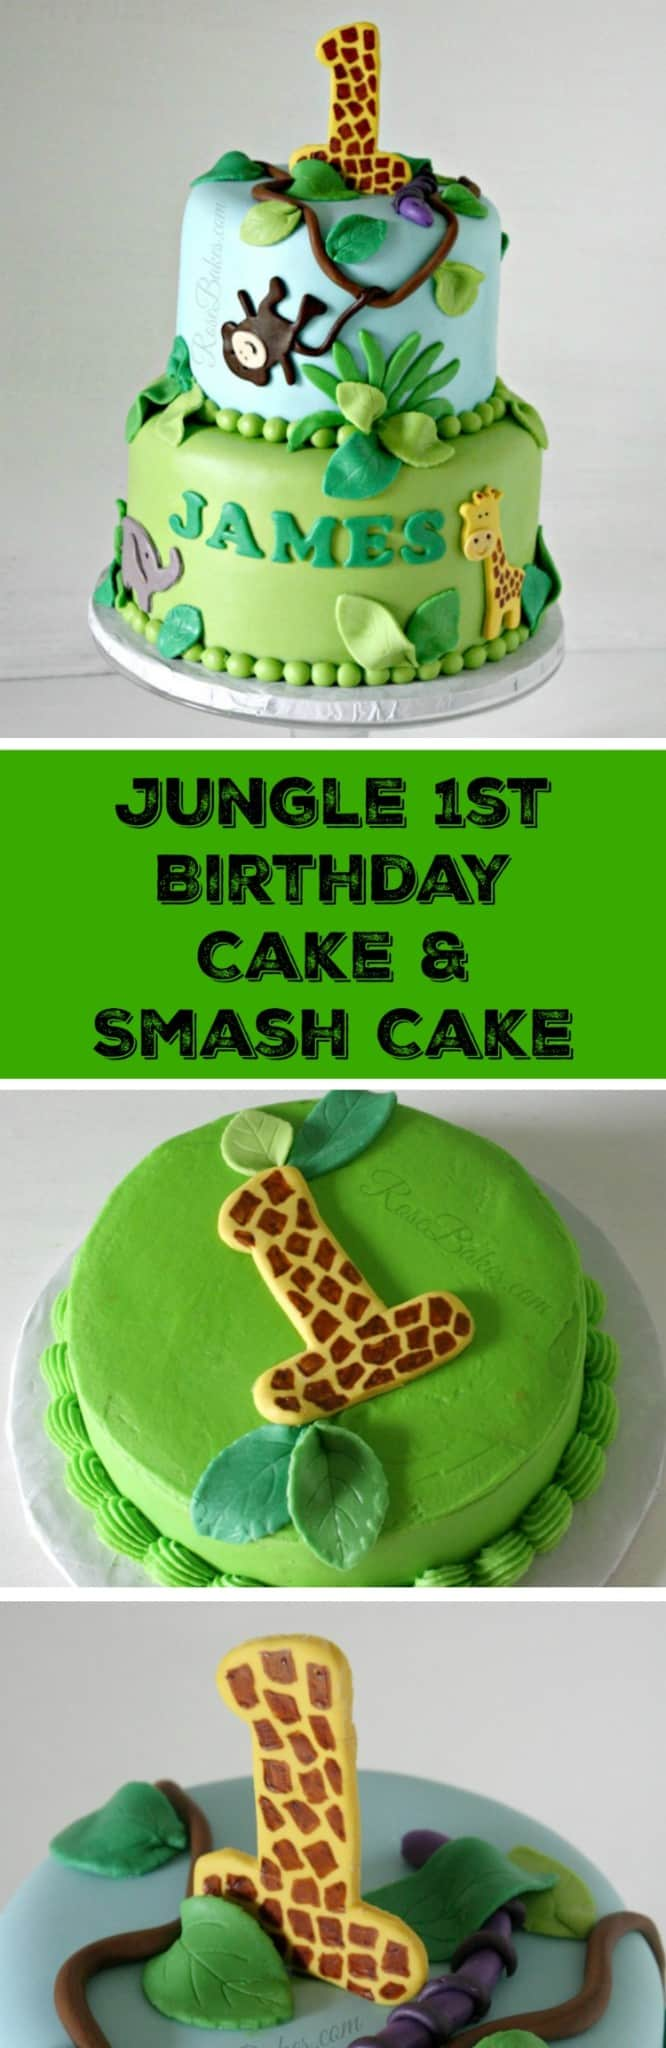 Jungle 1st Birthday Cake Smash By RoseBakes